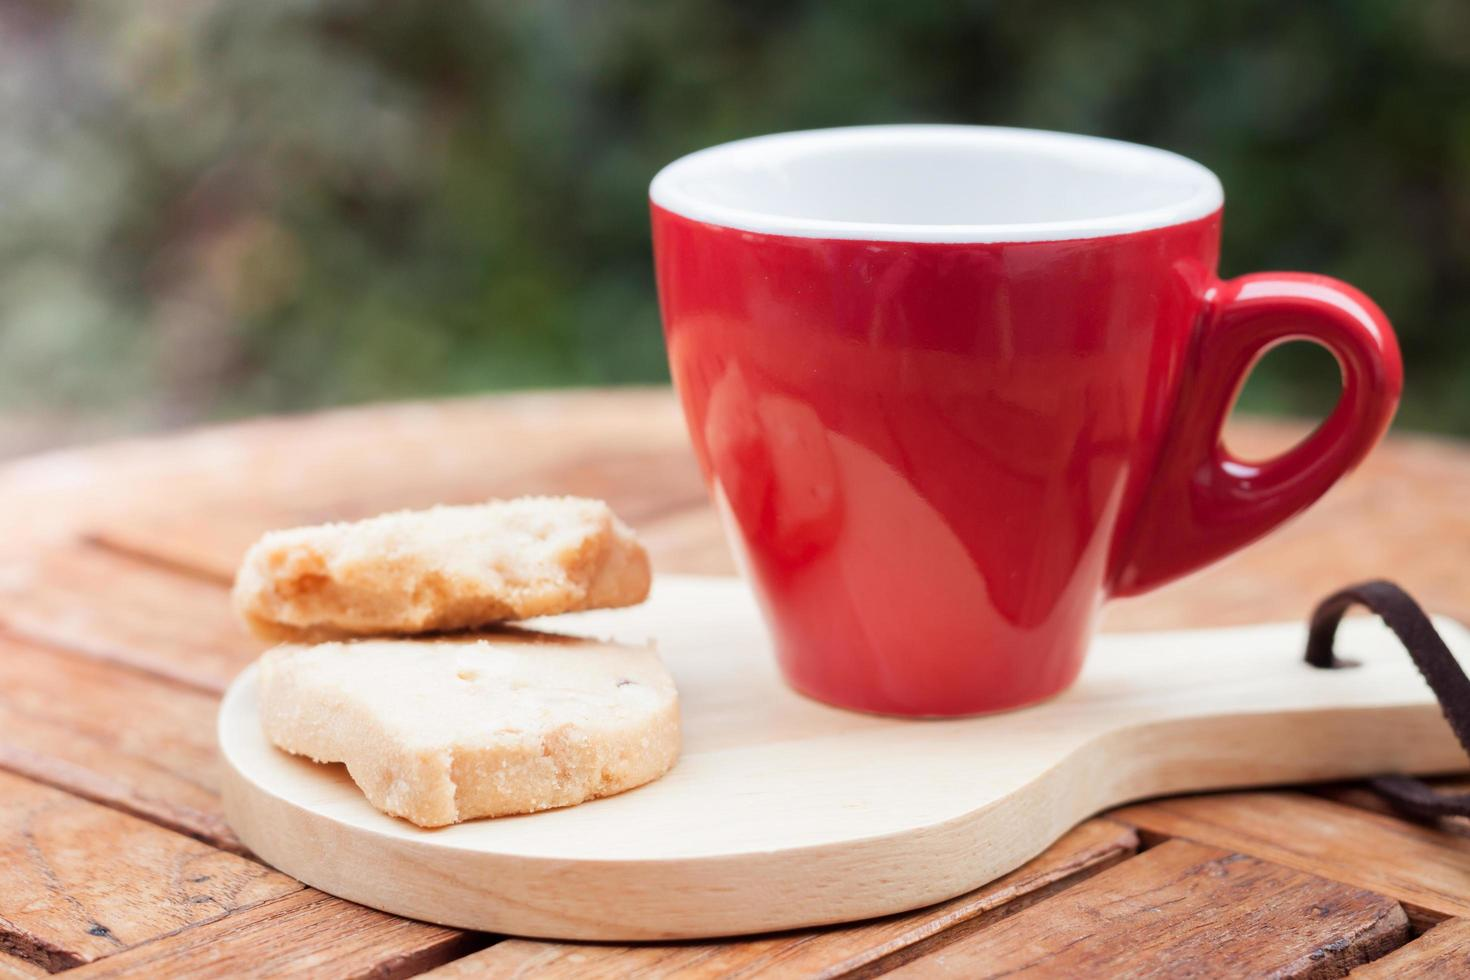 Cashew cookies with a coffee cup photo